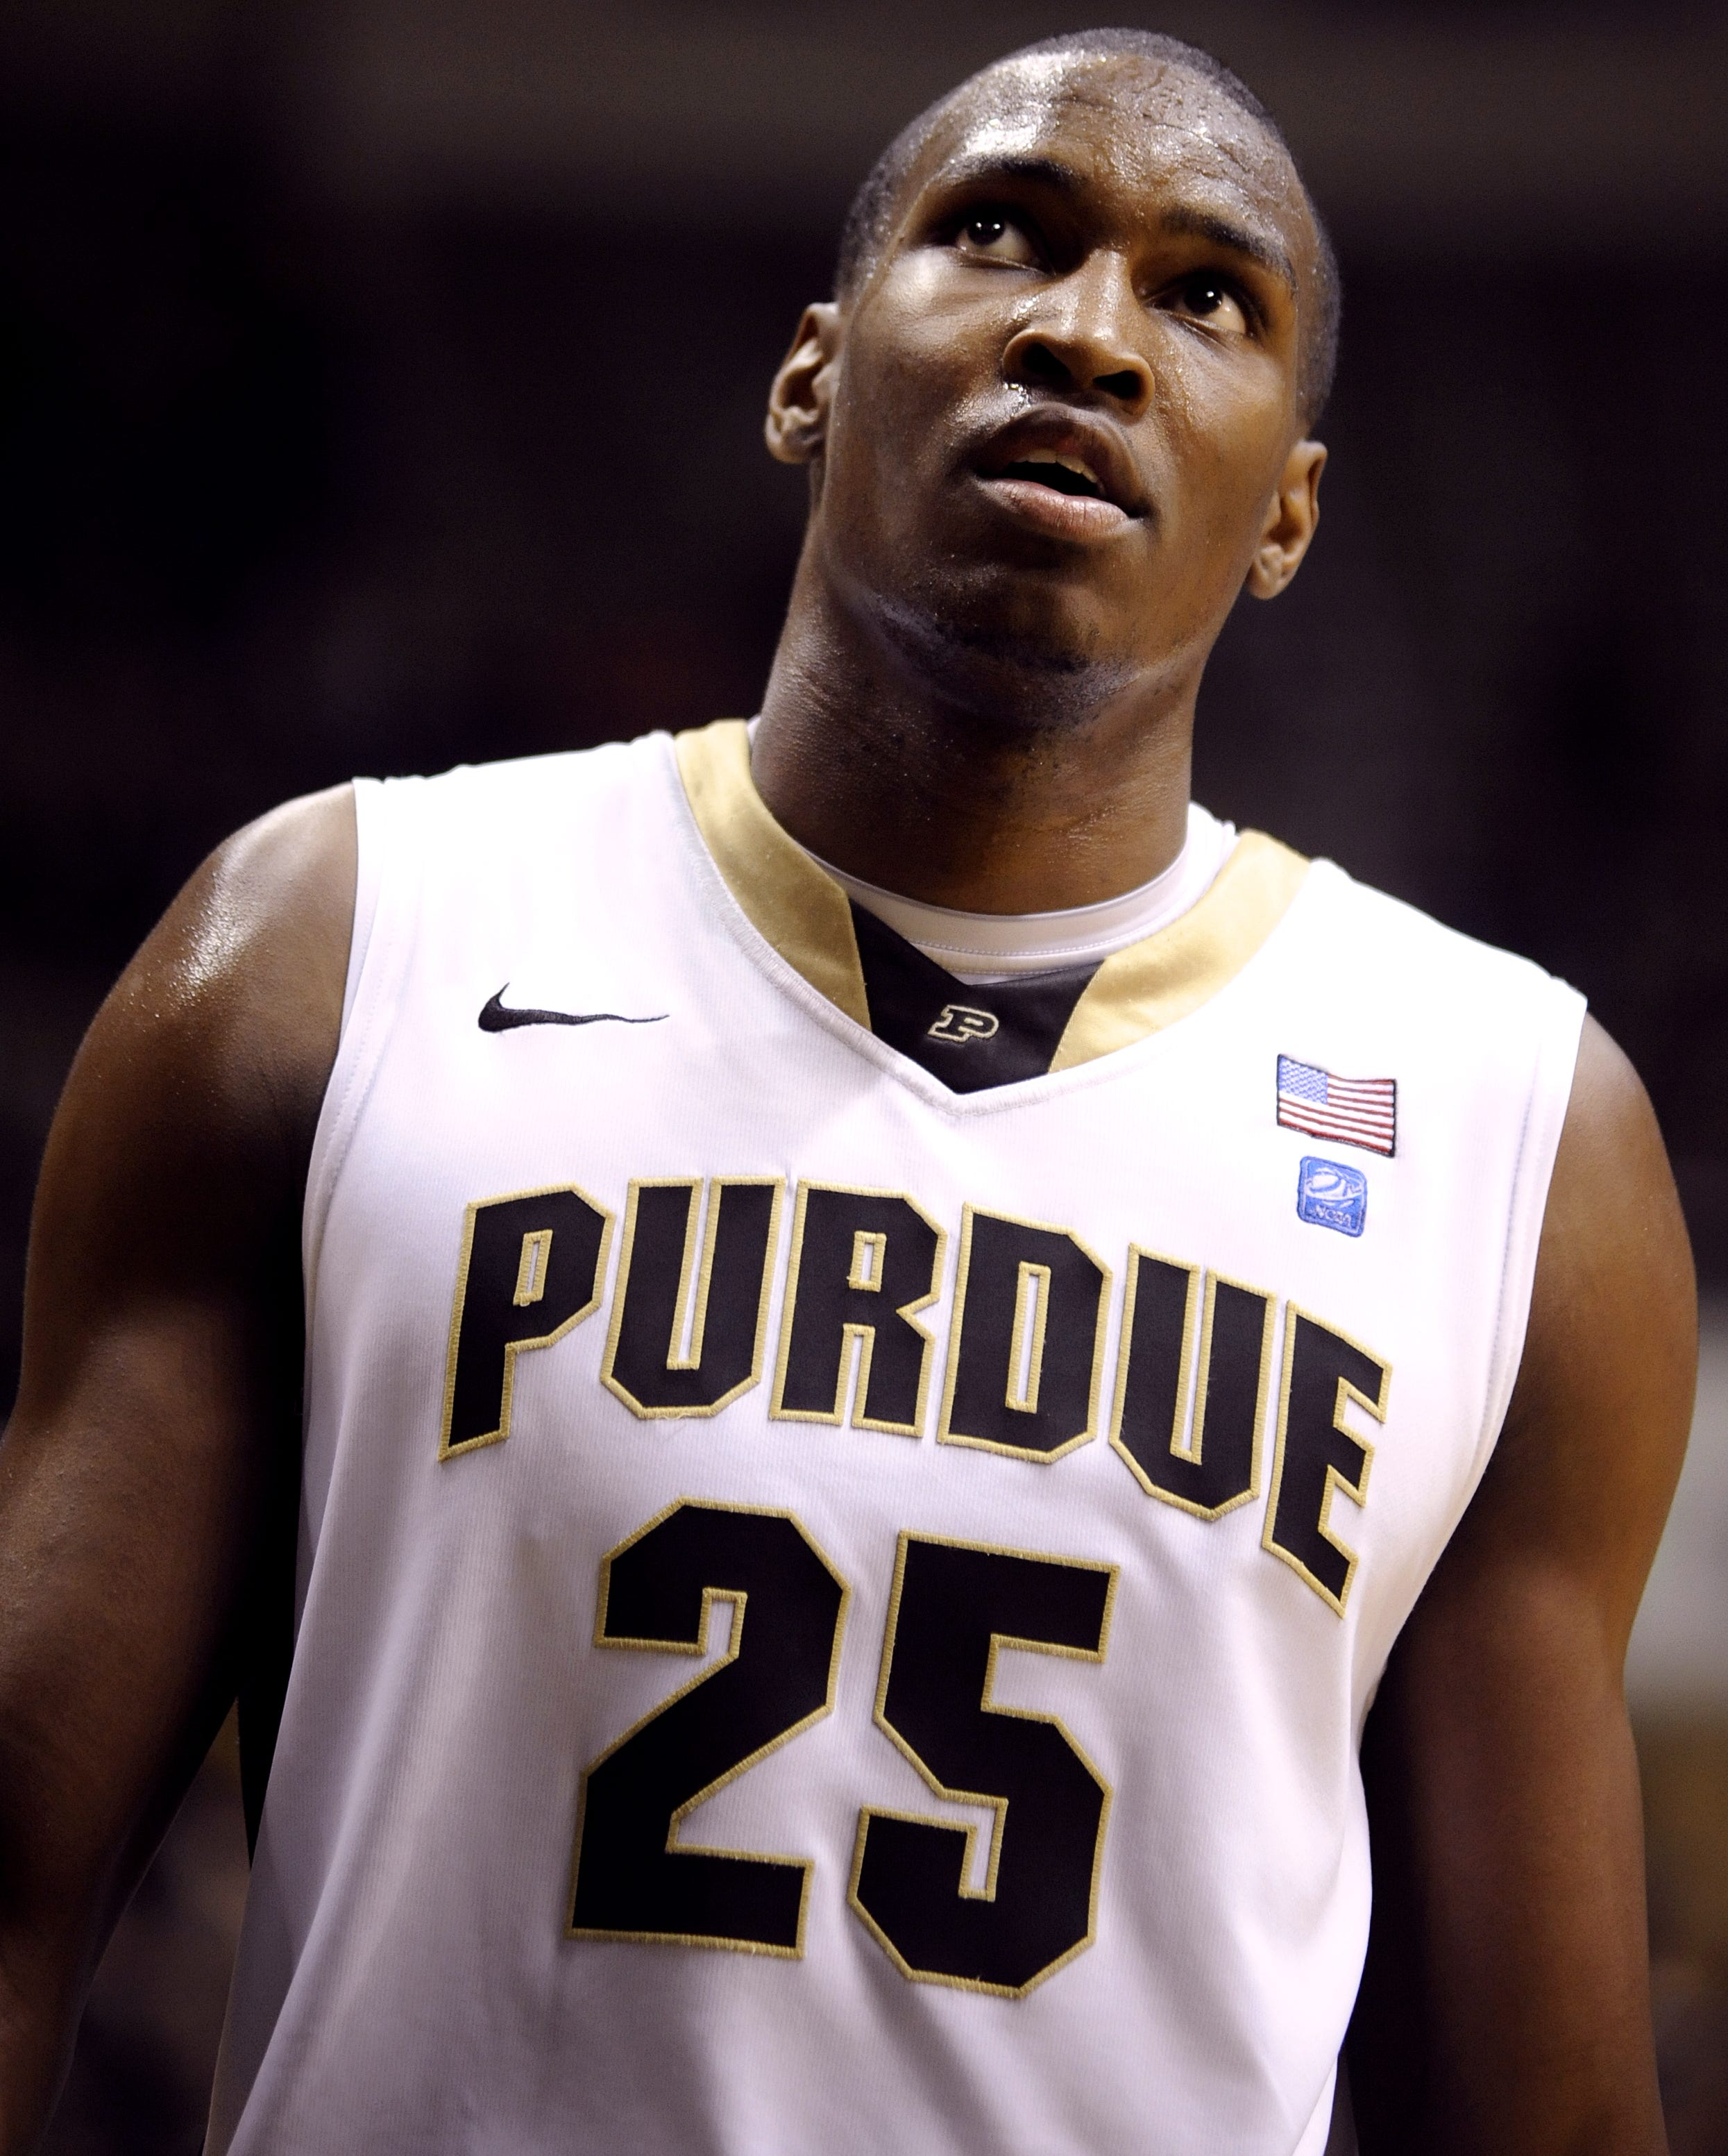 Purdue center JaJuan Johnson eyes the basket before a free throw against Austin Peay at Mackey Arena in 2010.